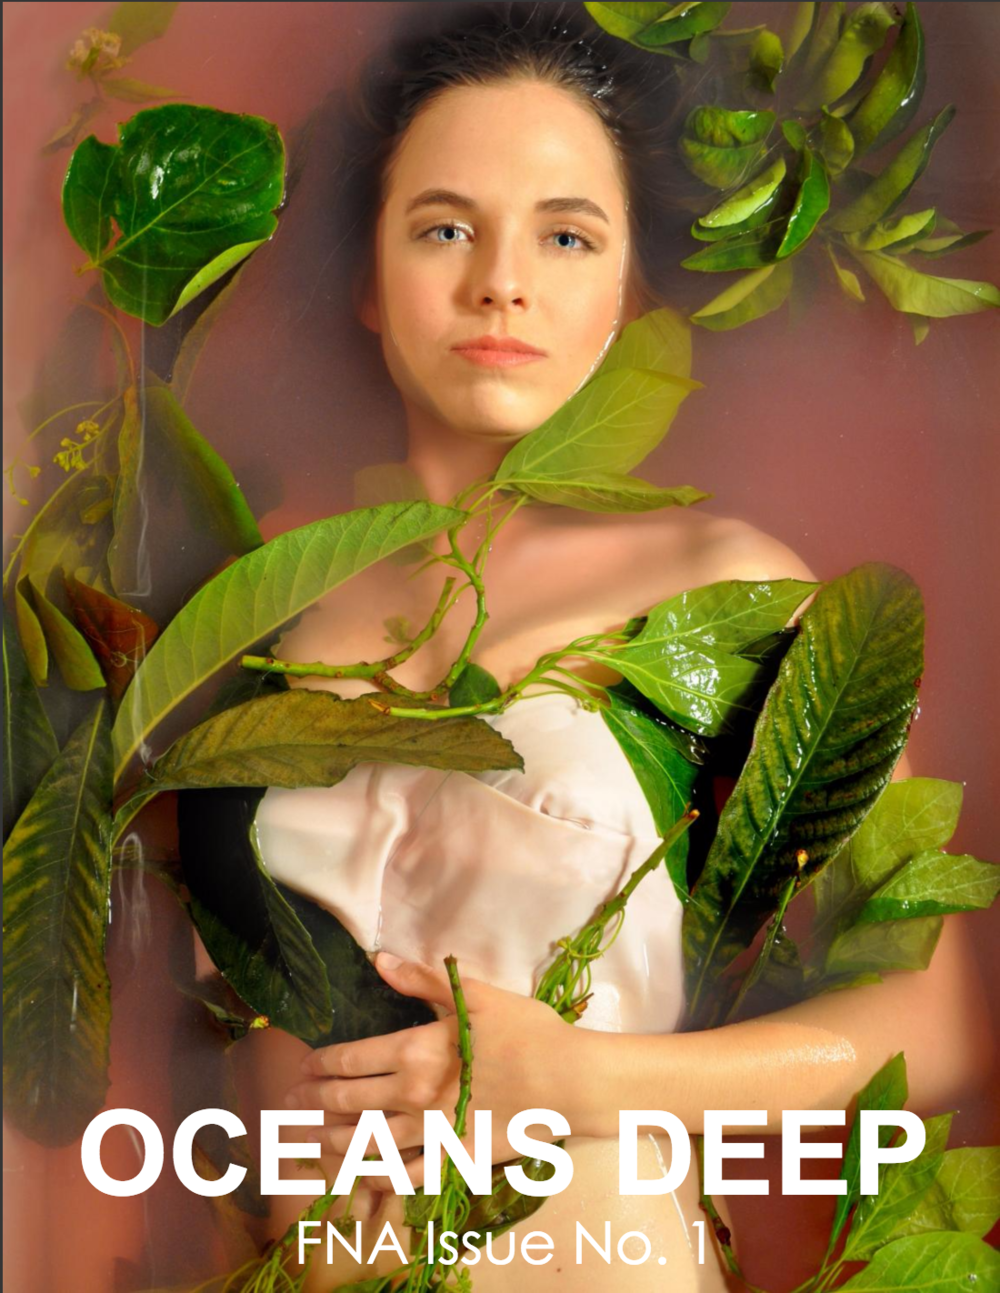 OCEANS DEEP  - Previously I was the Creative/Art Director for Fashion Network Association's first online magazine: Oceans Deep, I was in charge of layout design, the editorial photoshoot, and visually conceptualizing FNA's brand with the summer issue theme -